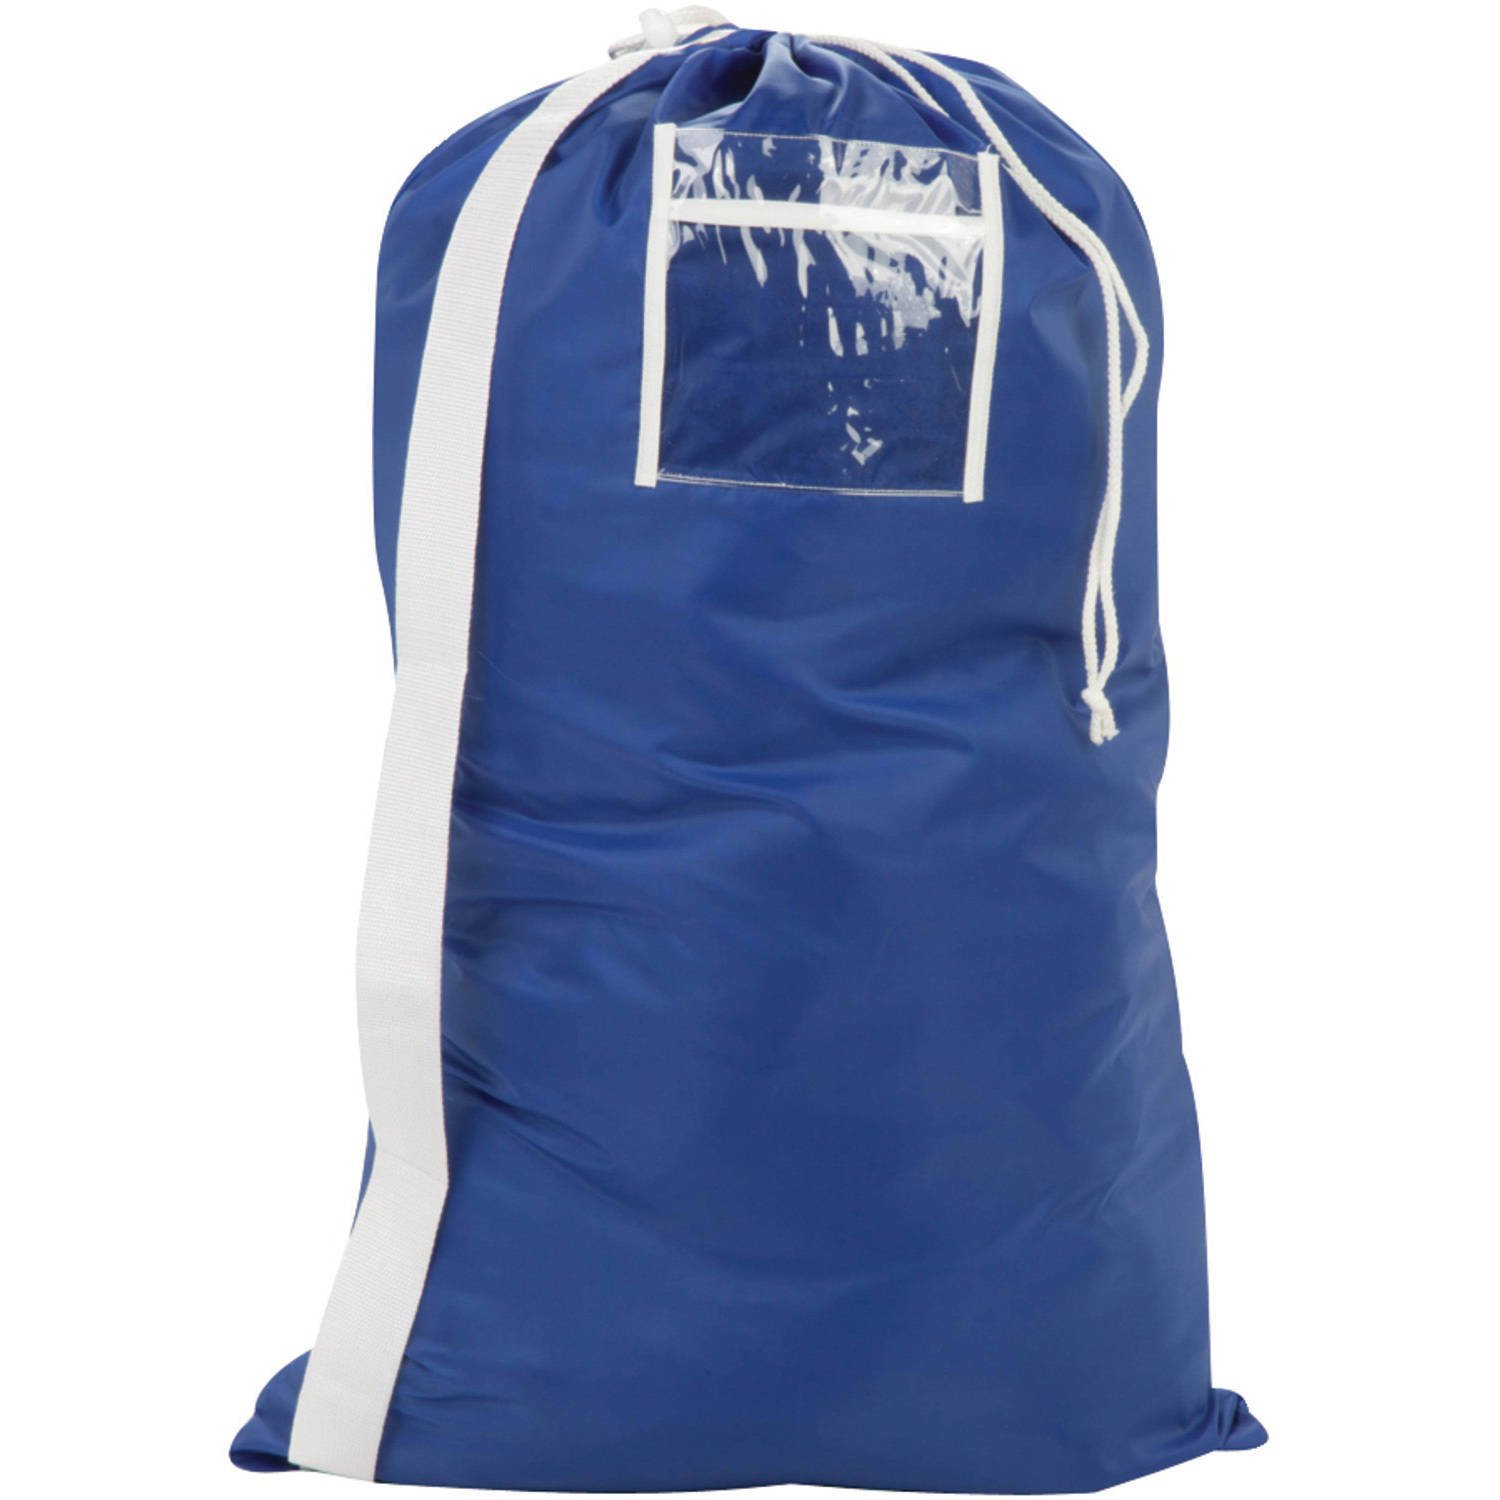 Honey-Can-Do Lbg-03898 Laundry Bag With Shoulder Strap